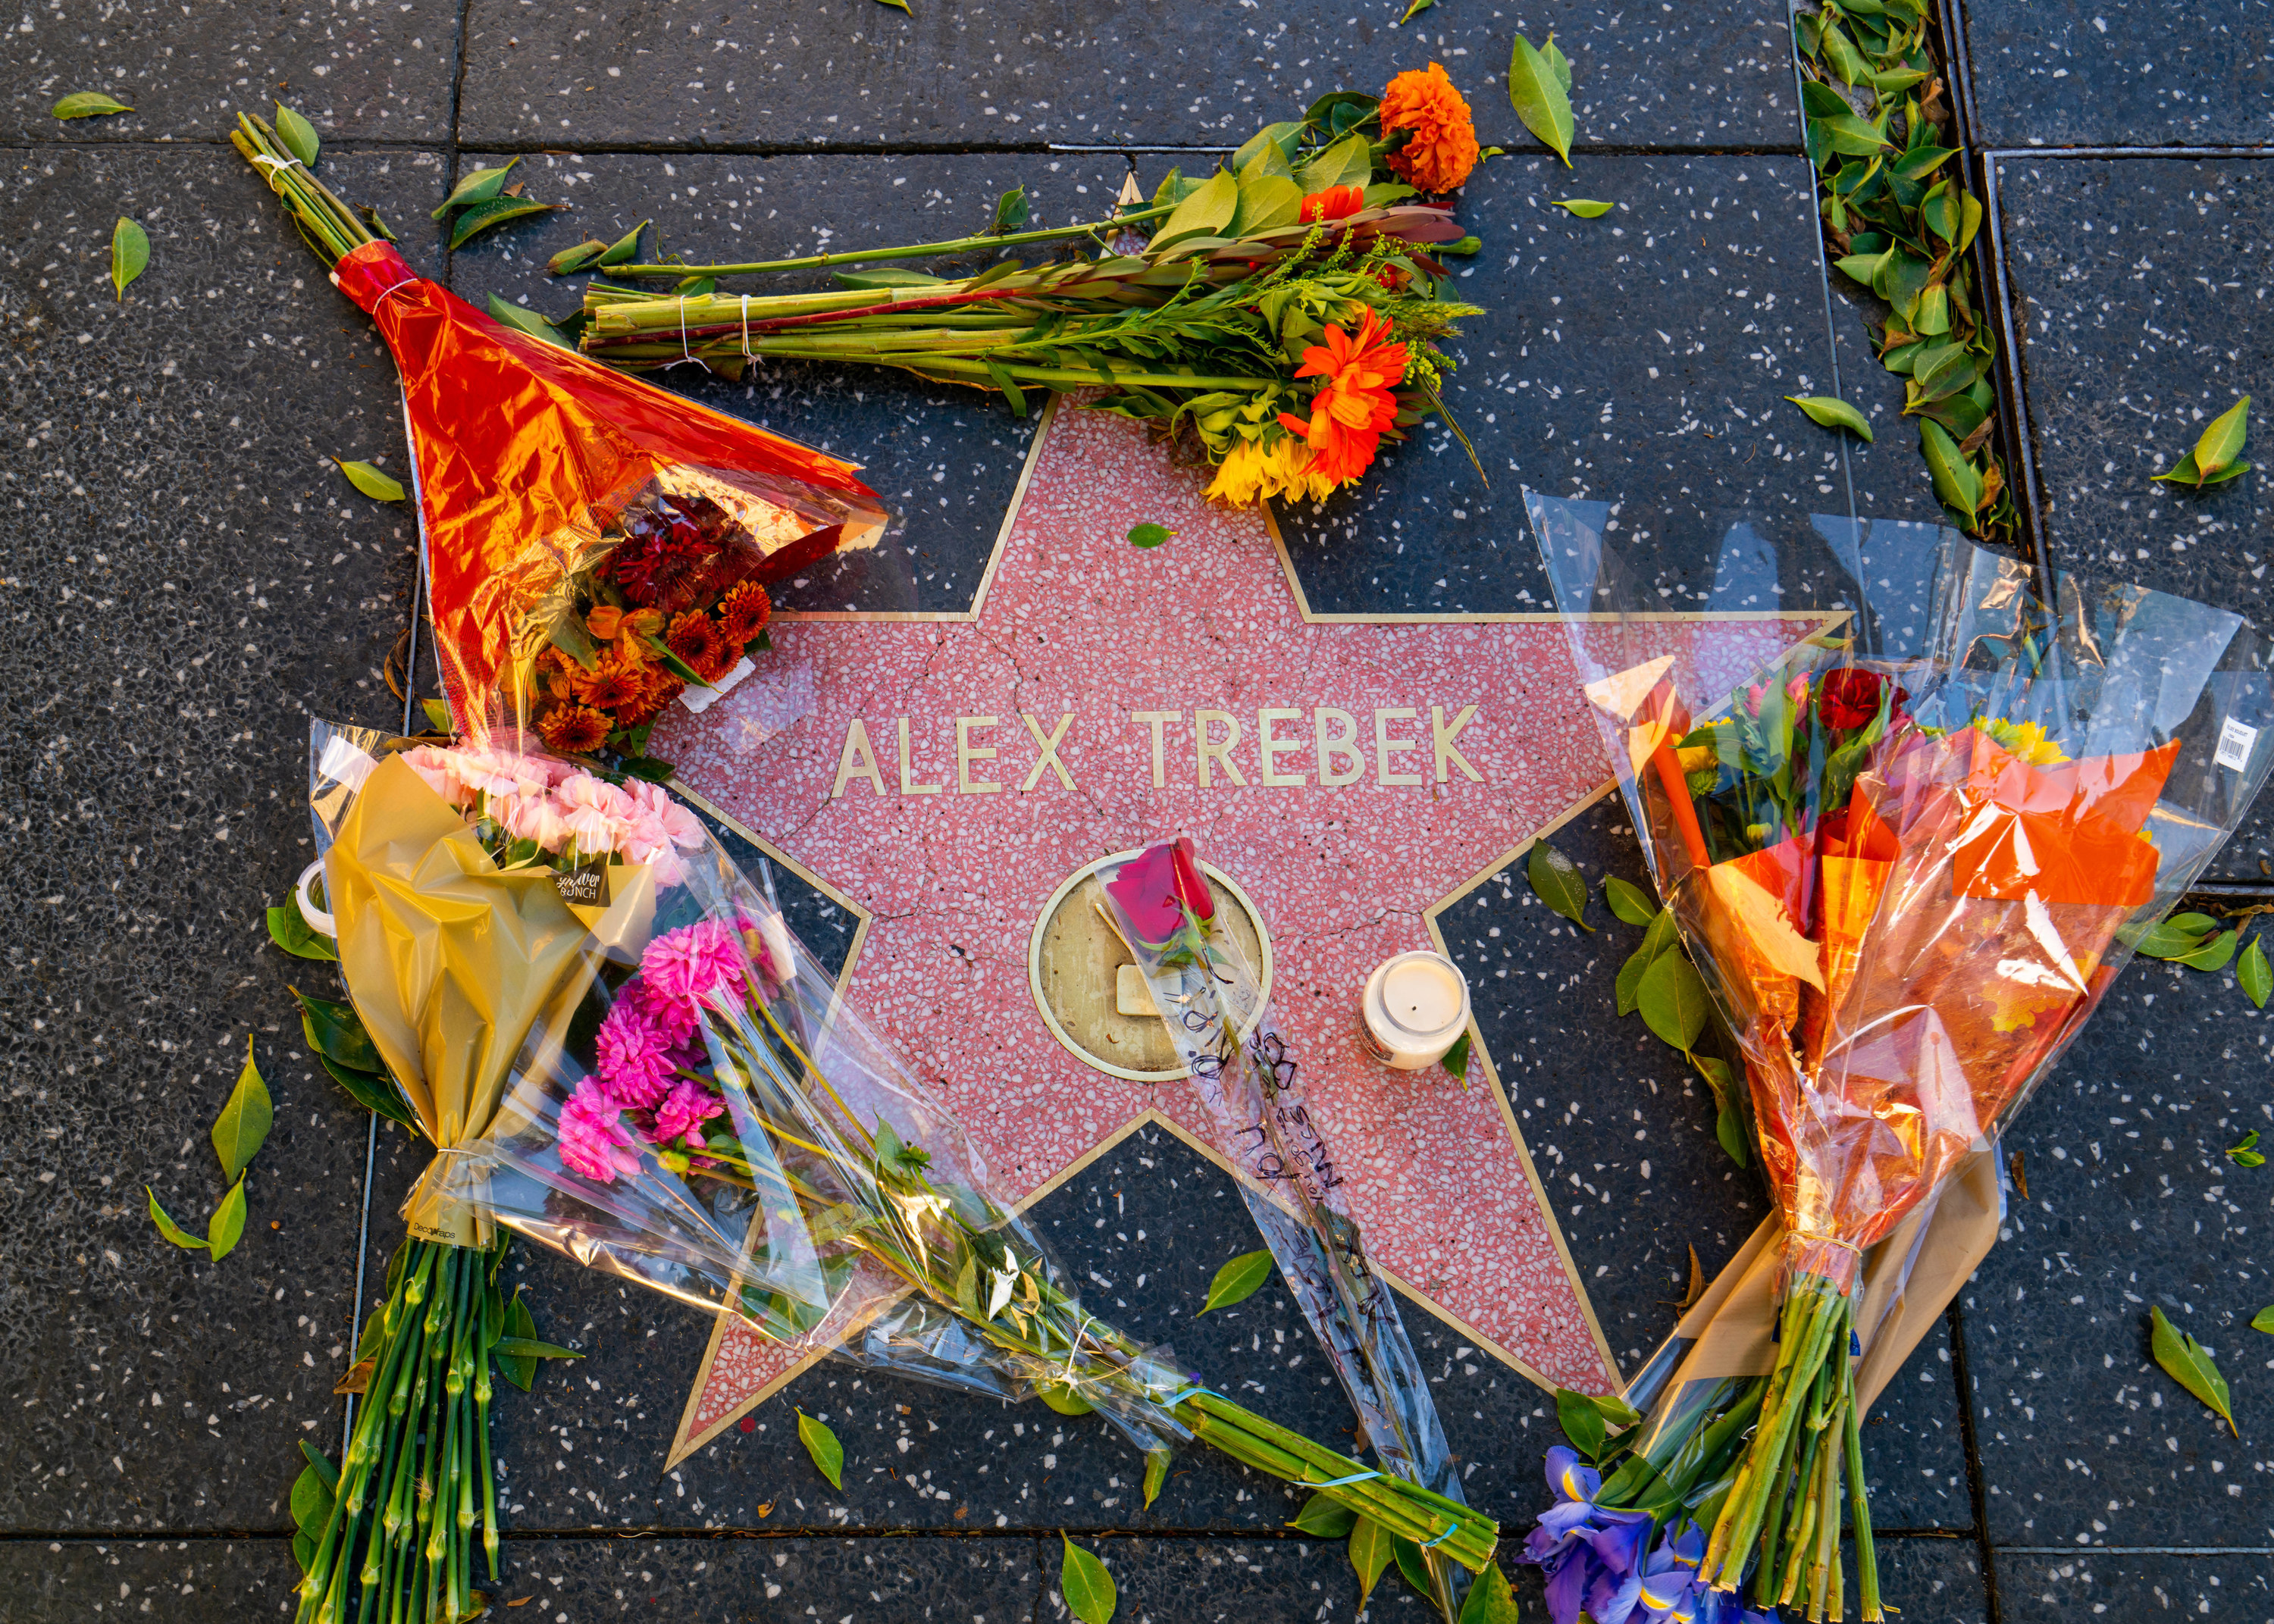 Flowers surround Alex Trebek's star on the Walk of Fame after the announcement of his death